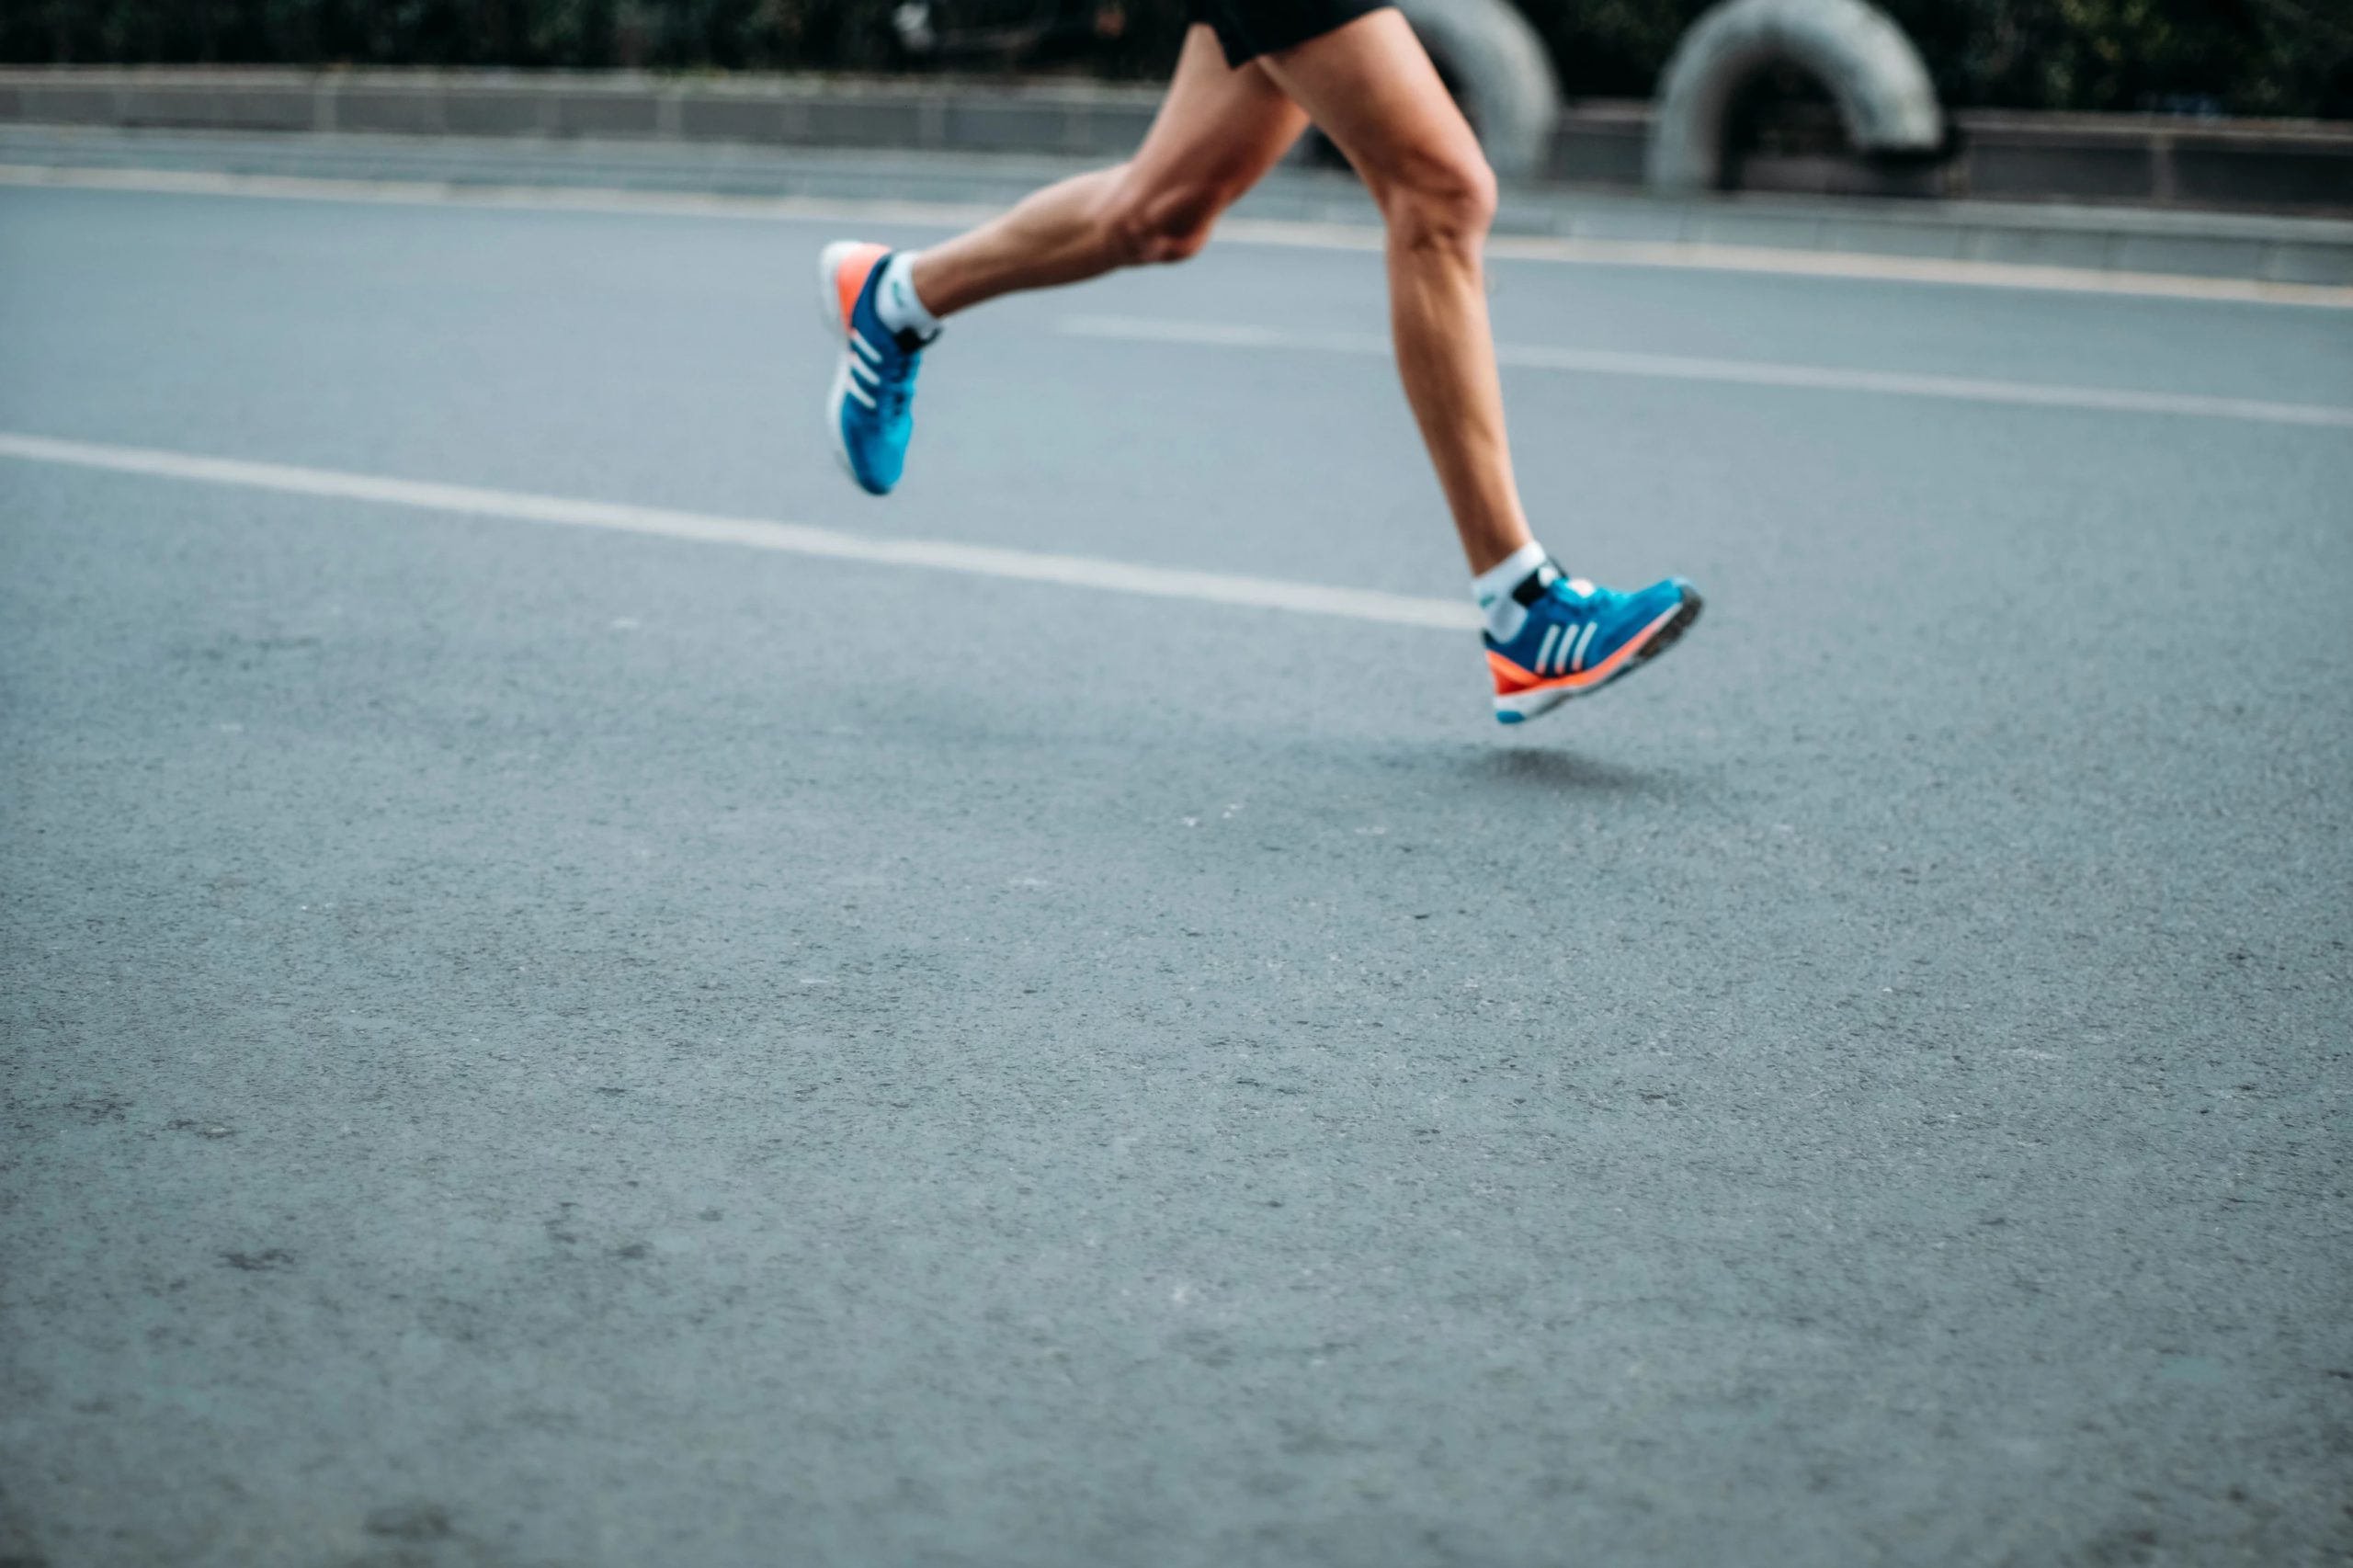 Return to Running: Easier Than You Think